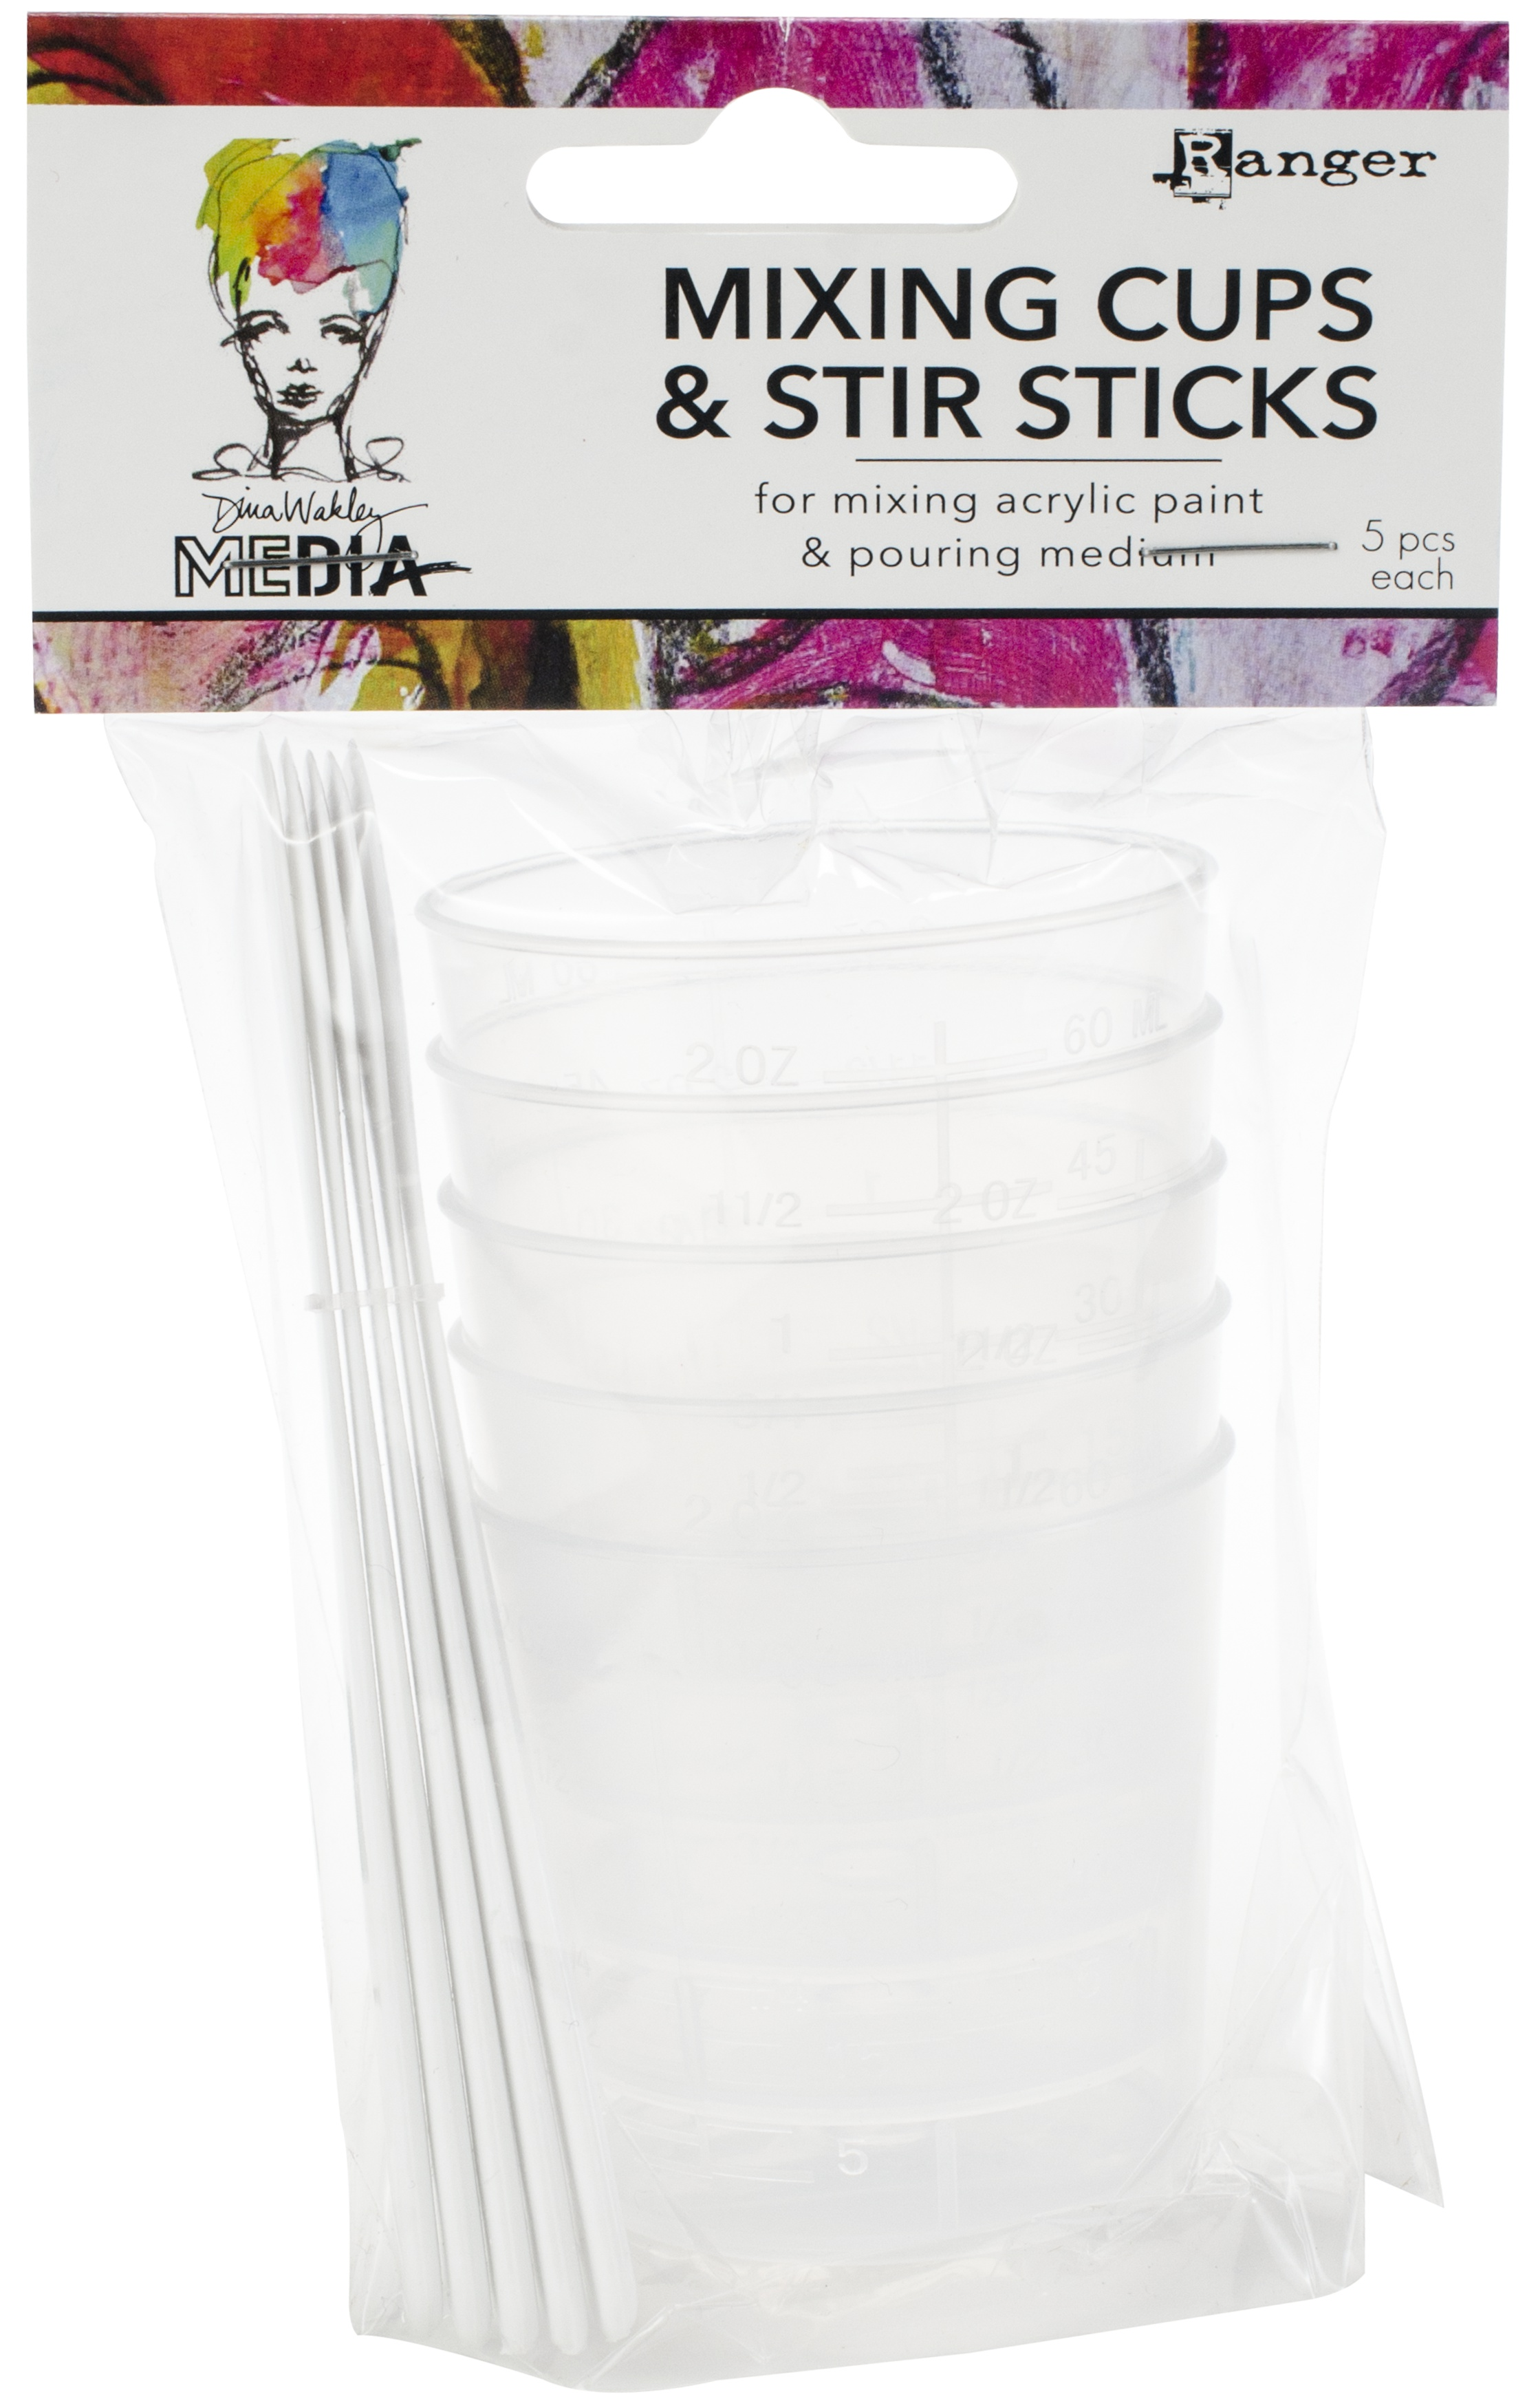 Dina Wakley Media Mixing Cups & White Stir Sticks 5/Pkg-